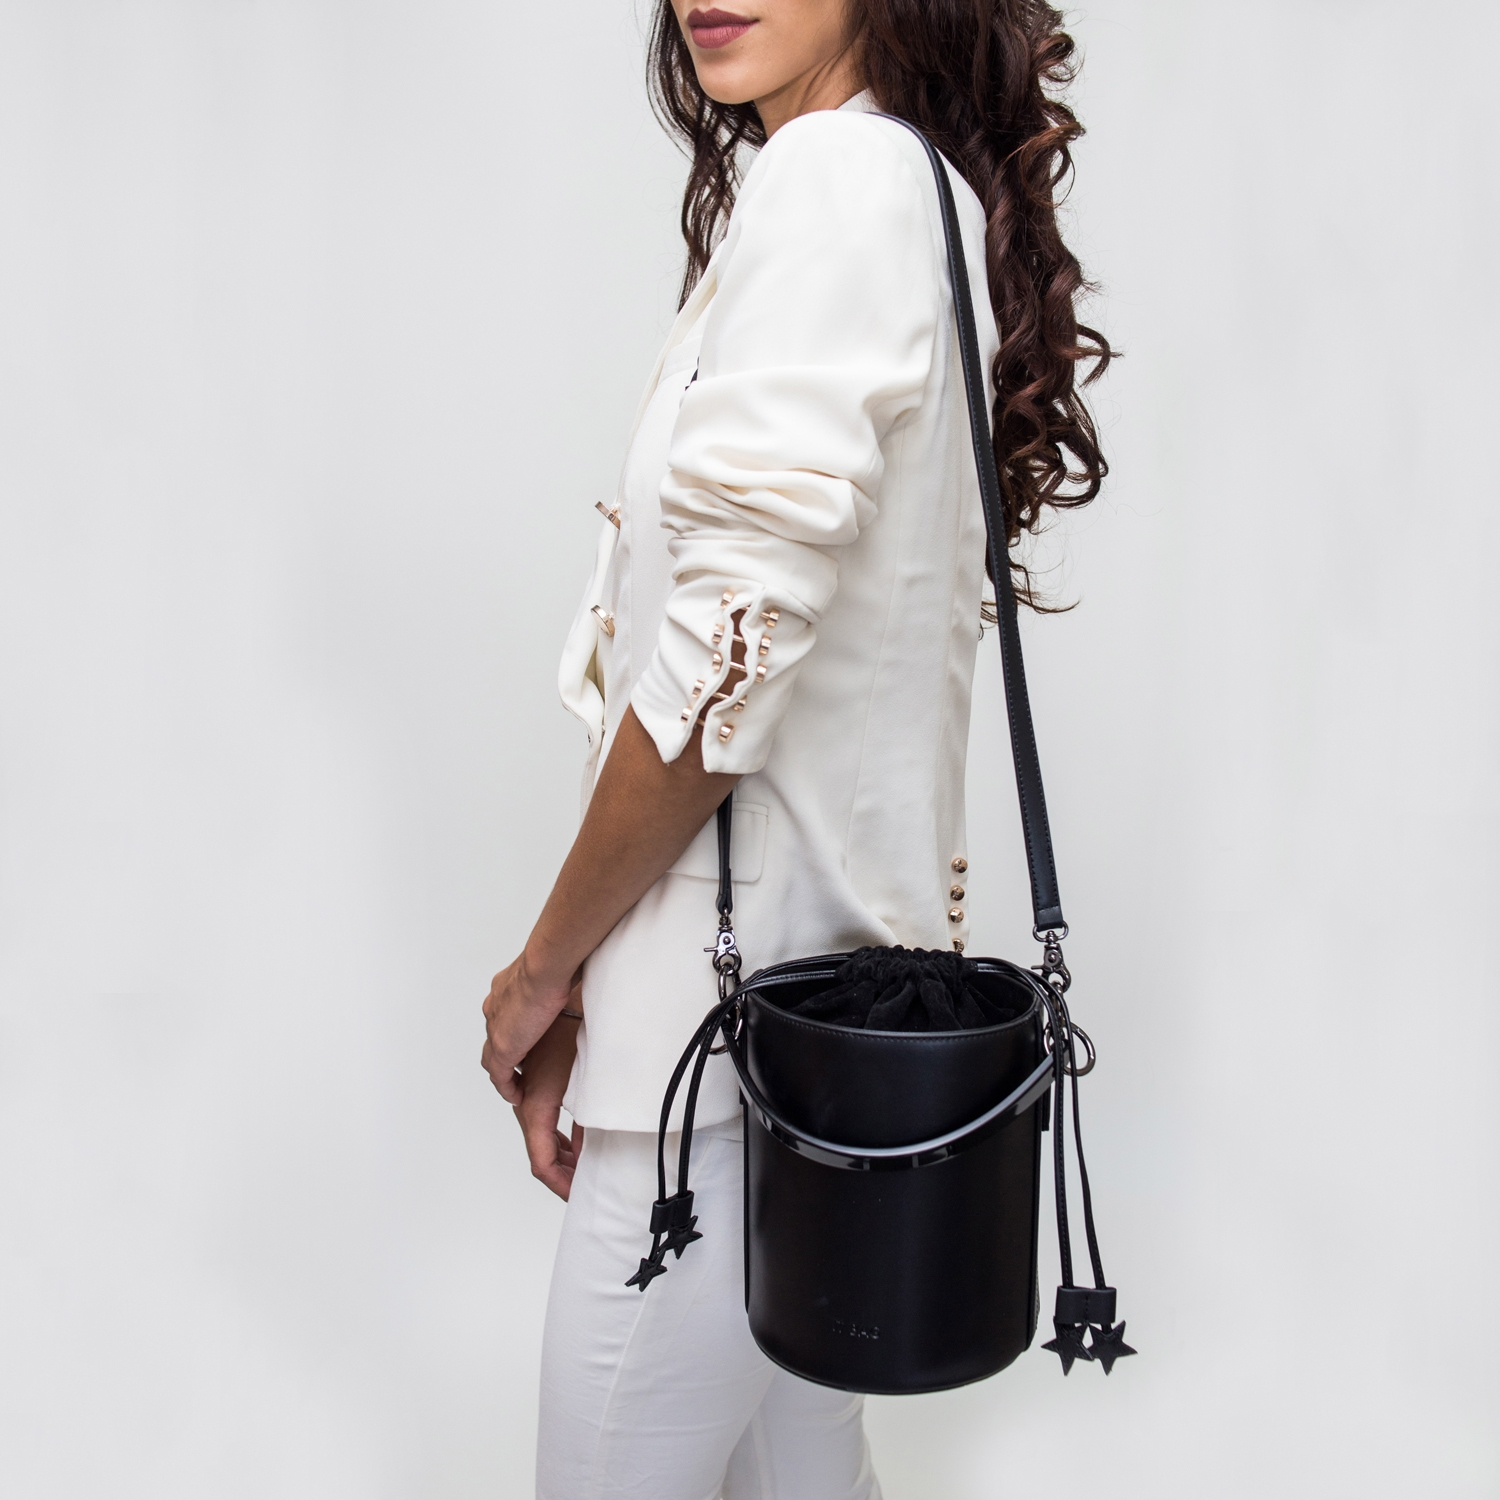 Star Bag – Black